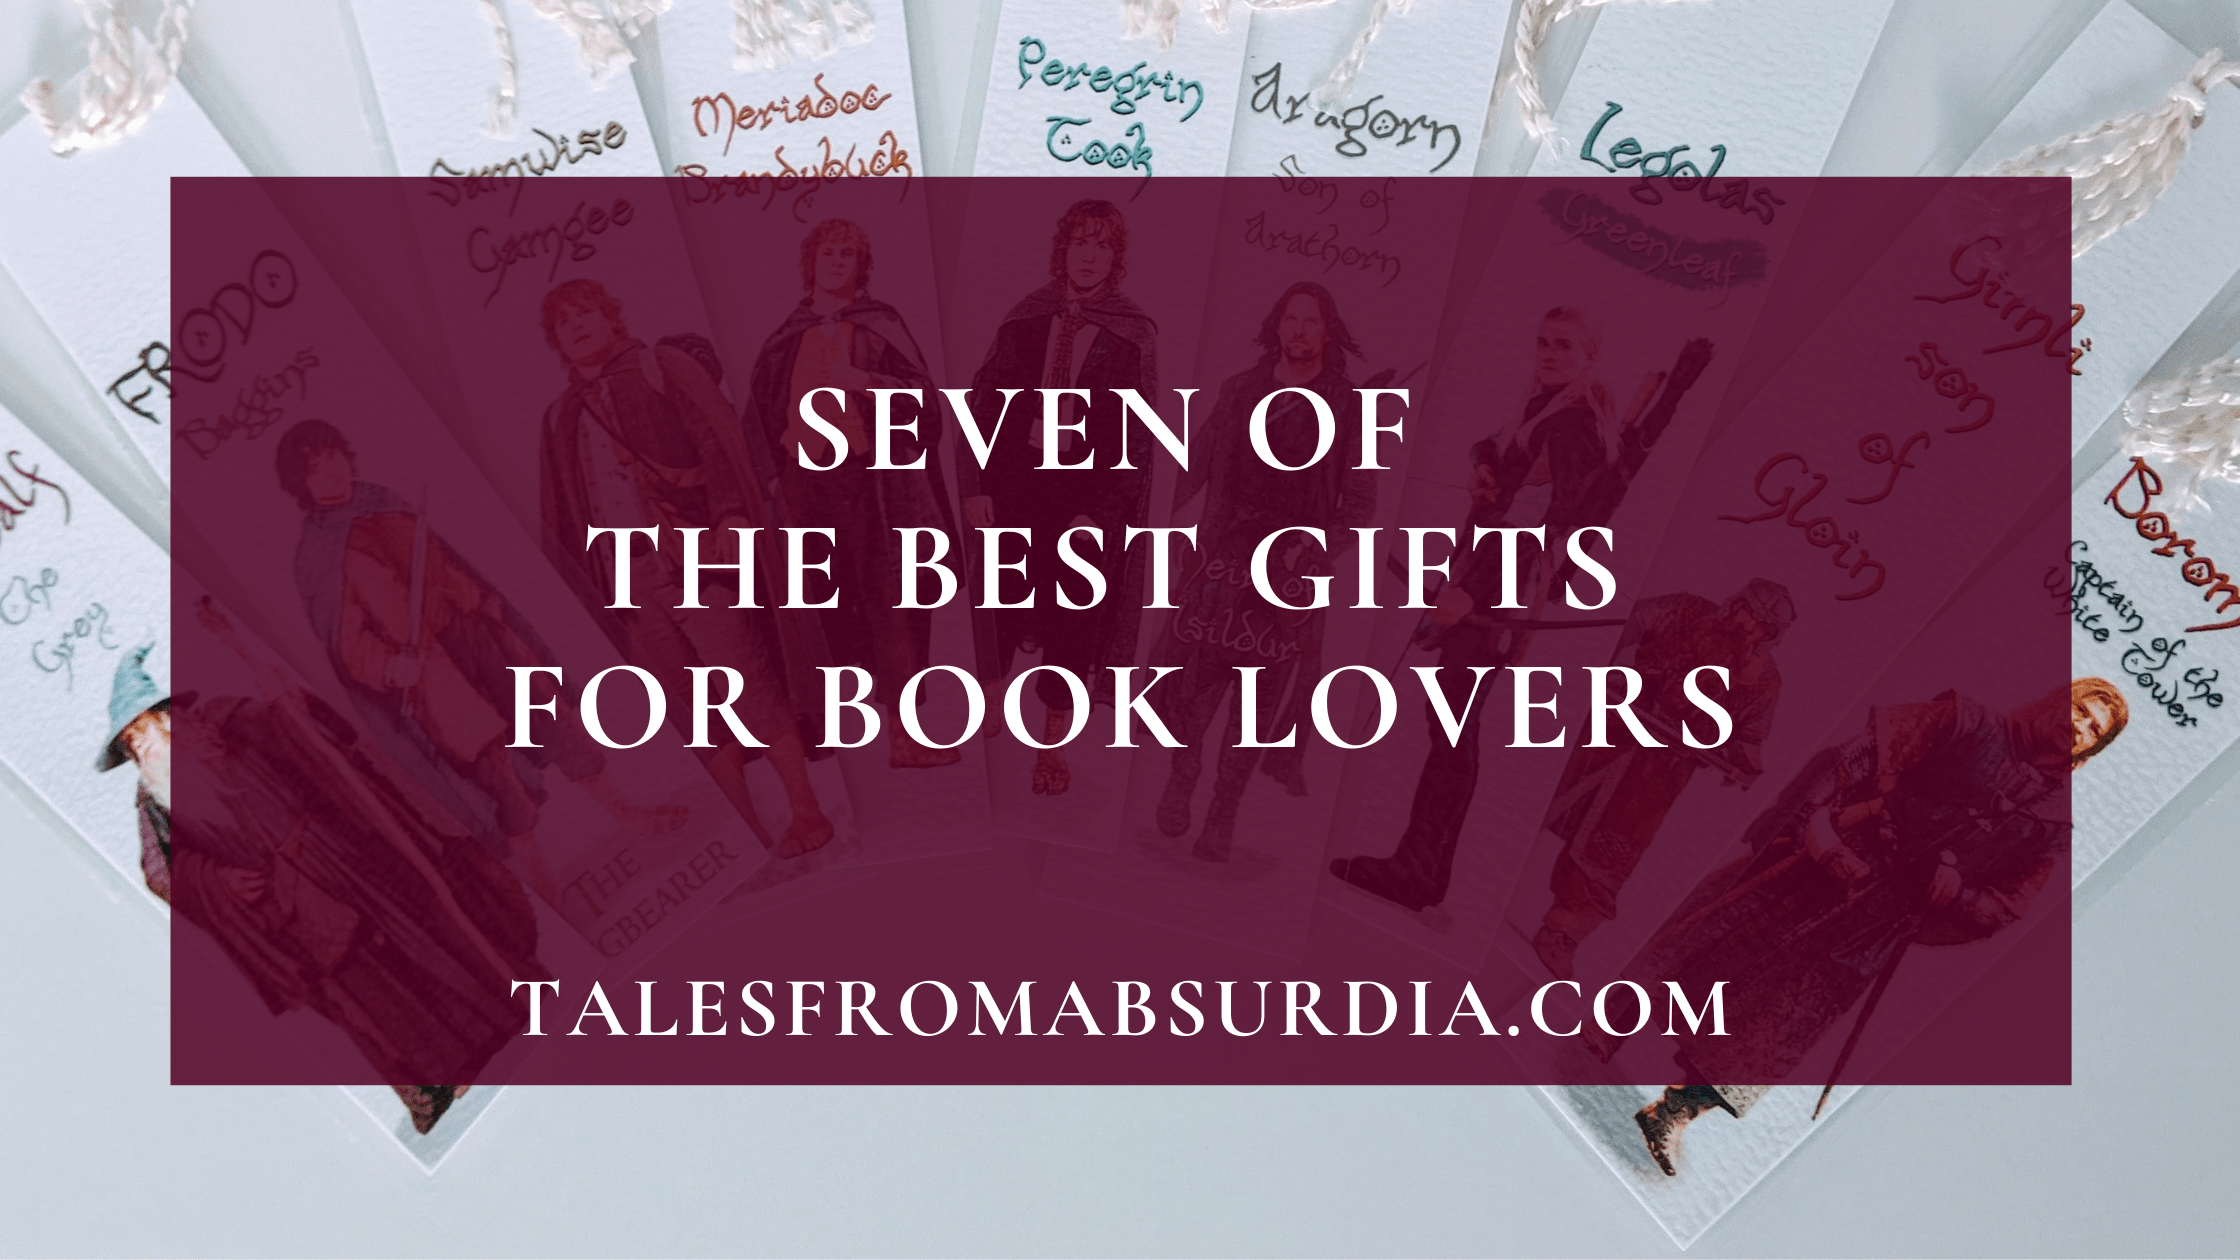 Seven of the Best Gifts for Book Lovers